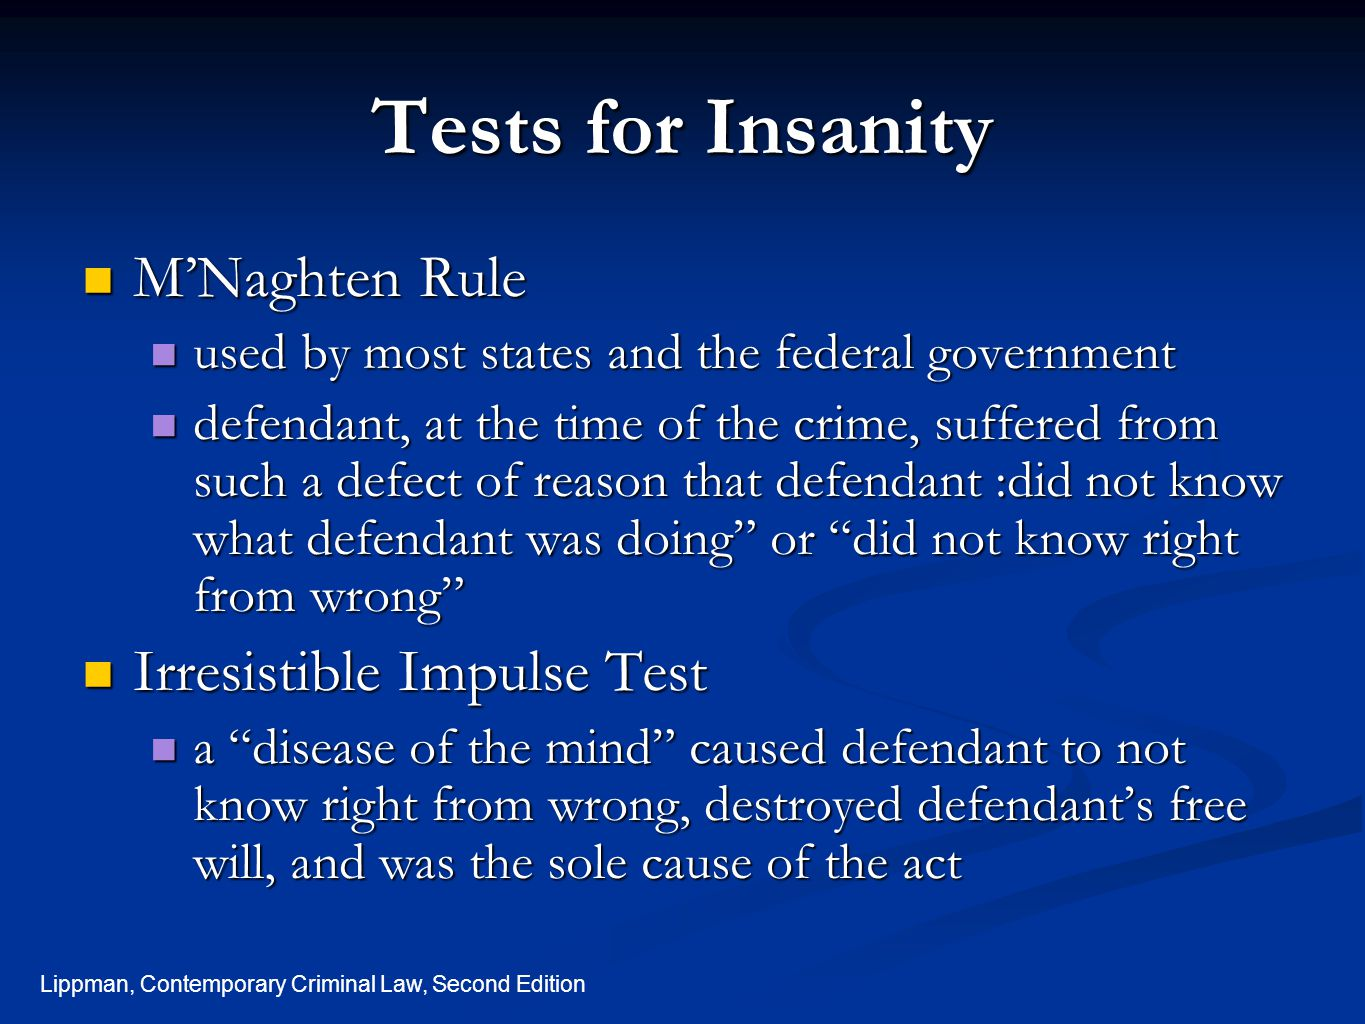 Tests for Insanity M'Naghten Rule Irresistible Impulse Test